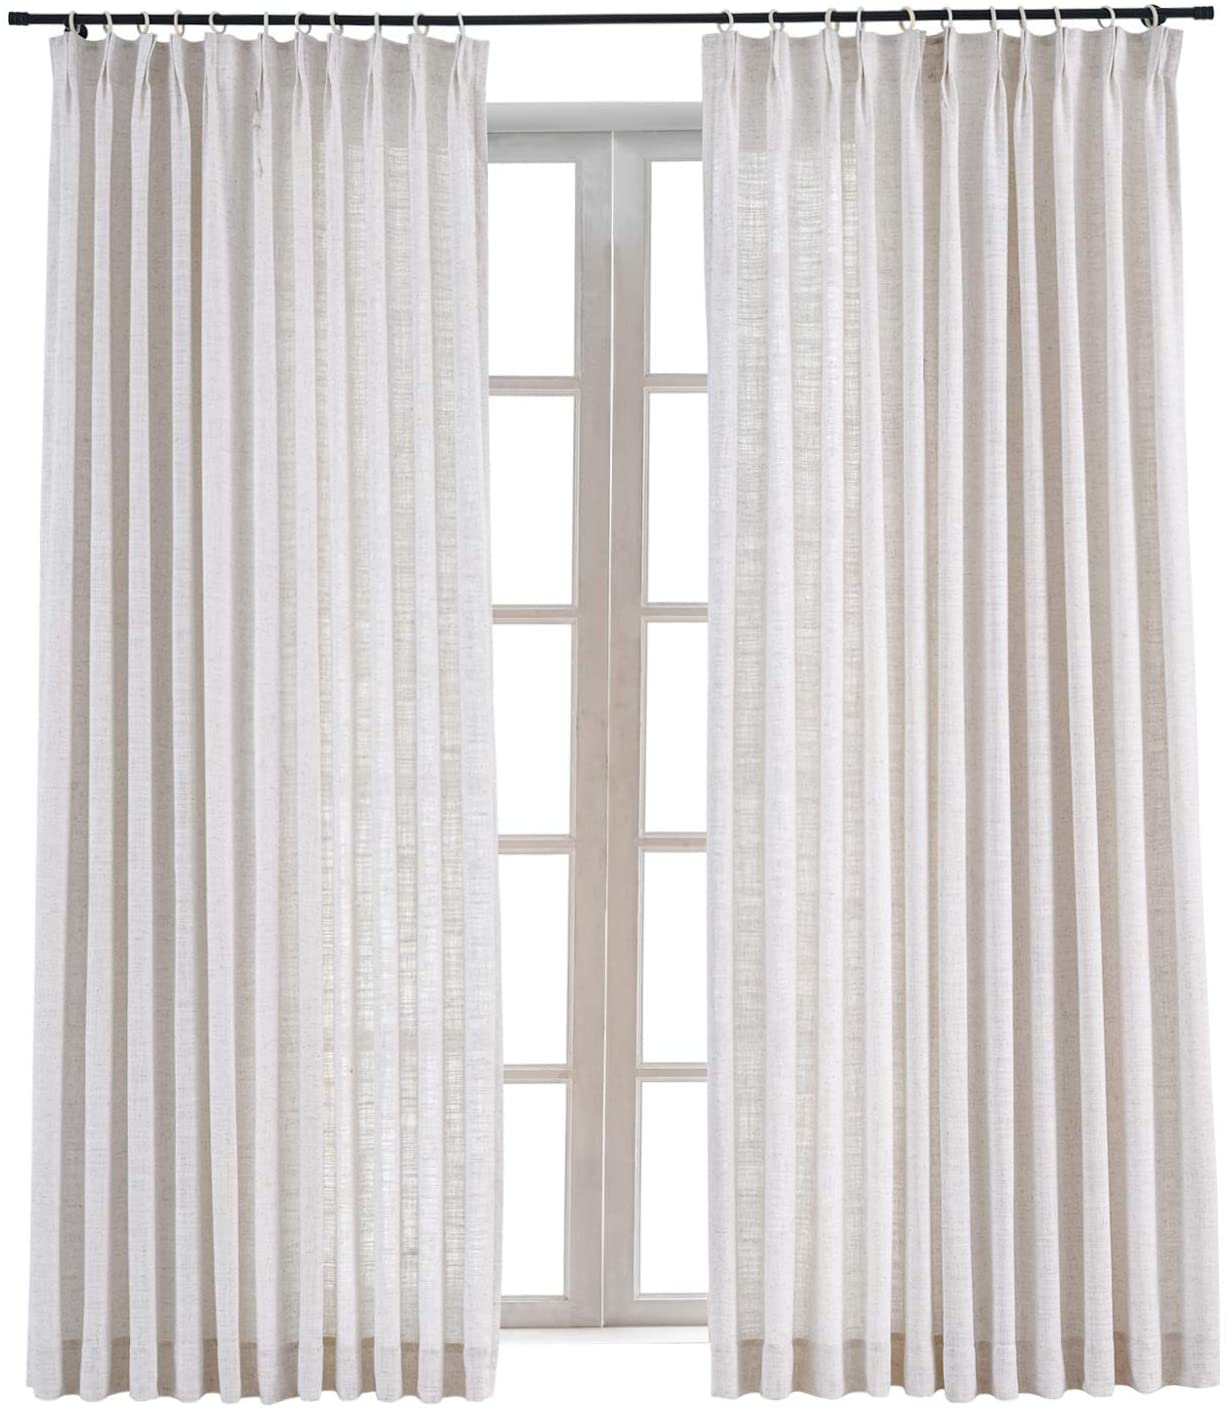 ChadMade Pinch Pleat Faux Linen Curtain Panel Room Darkening Drapery Sliding Glass Door Living Room,60 Wx84 L (1 Panel), Liz Collection